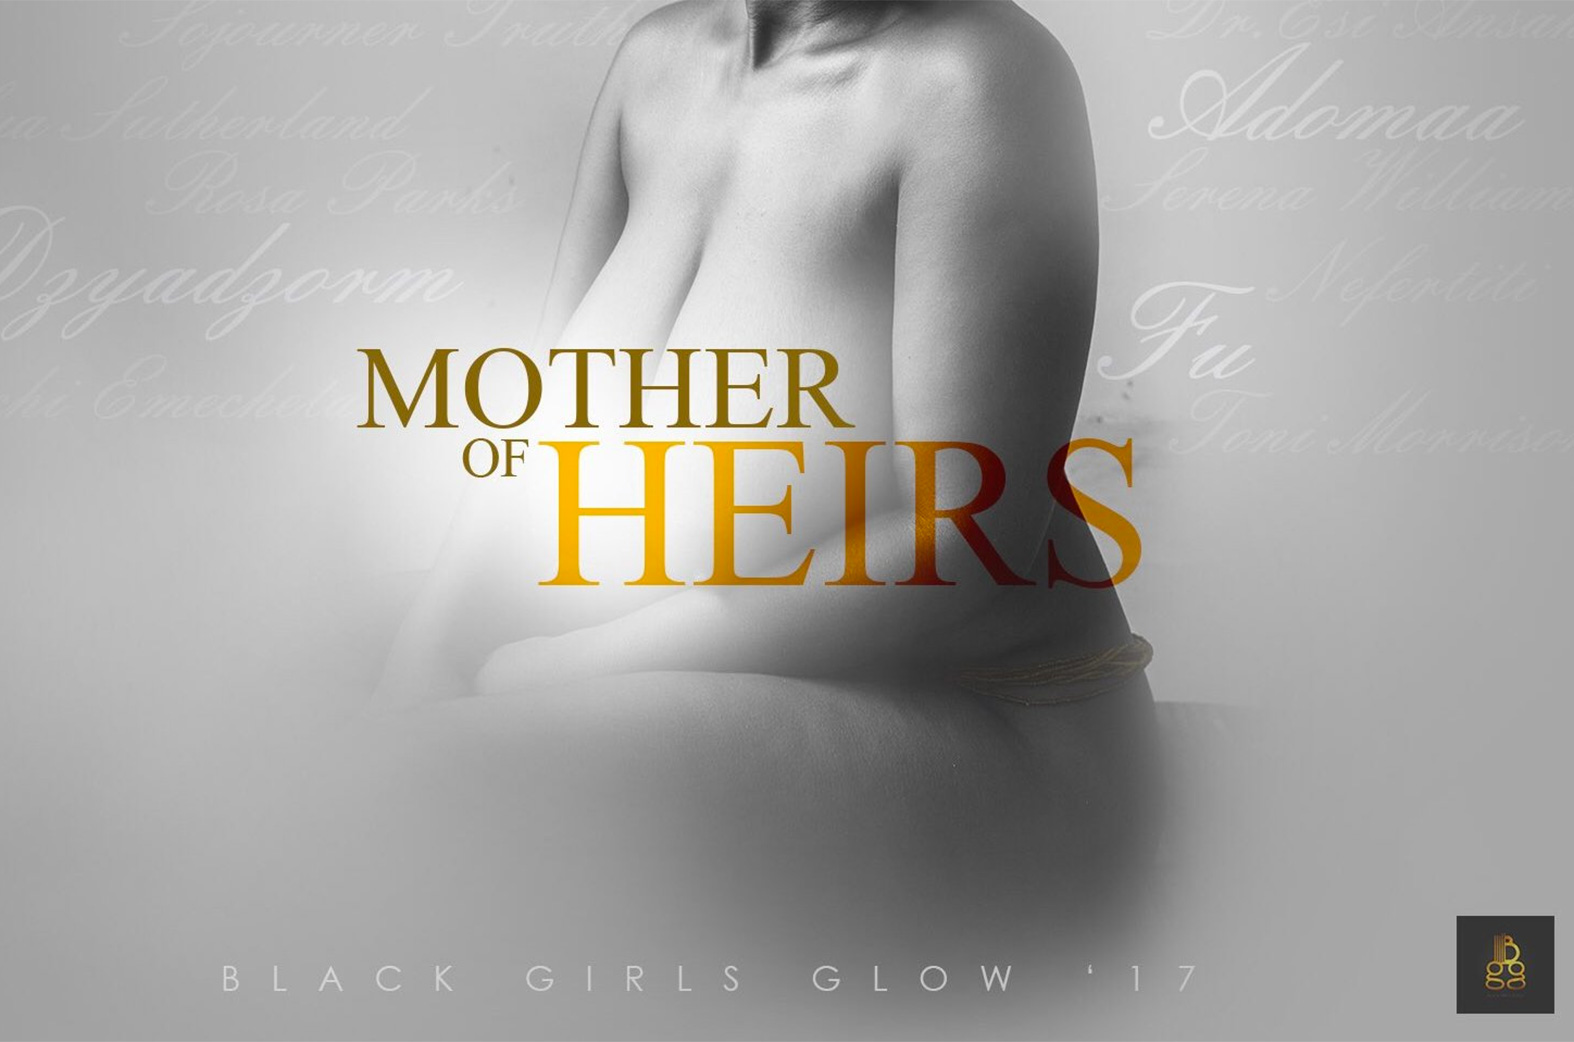 Mothers Of Heirs